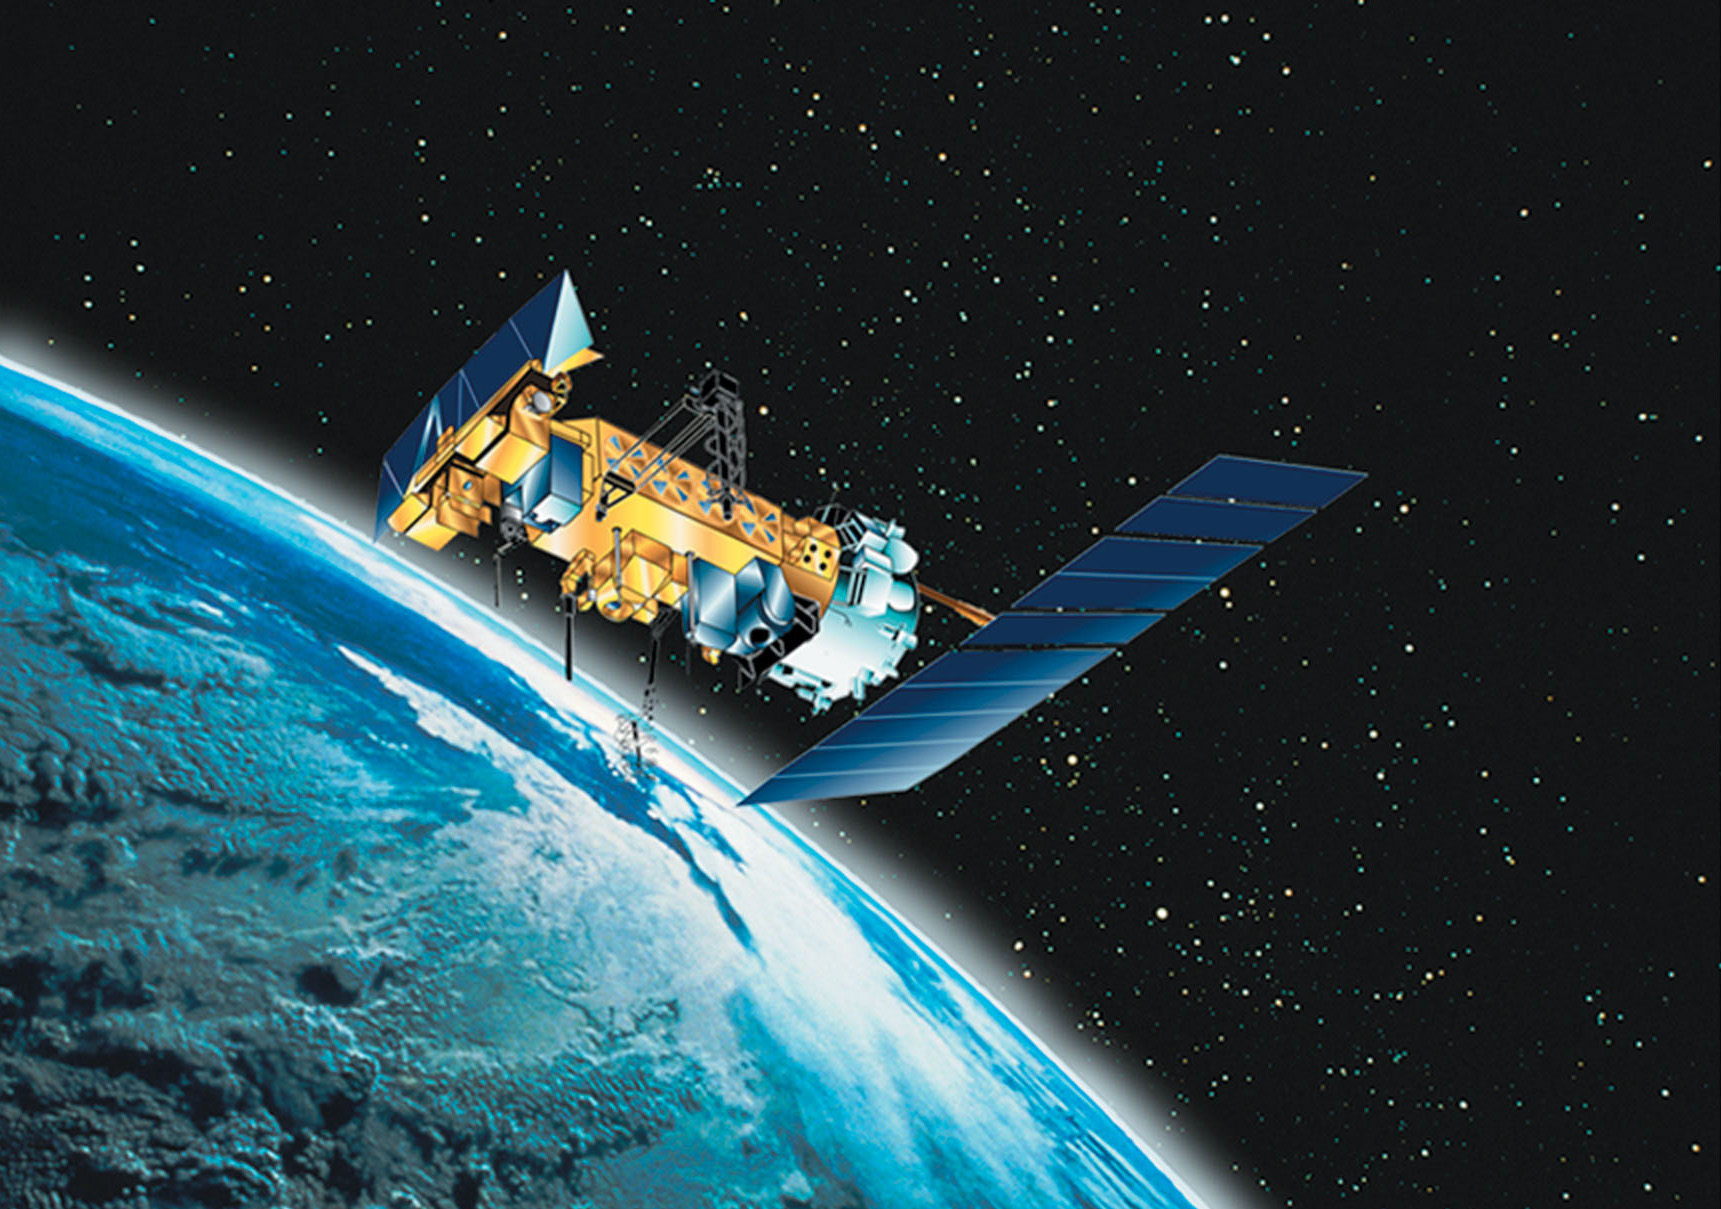 How Many Man-Made Satellites Are Currently Orbiting Earth